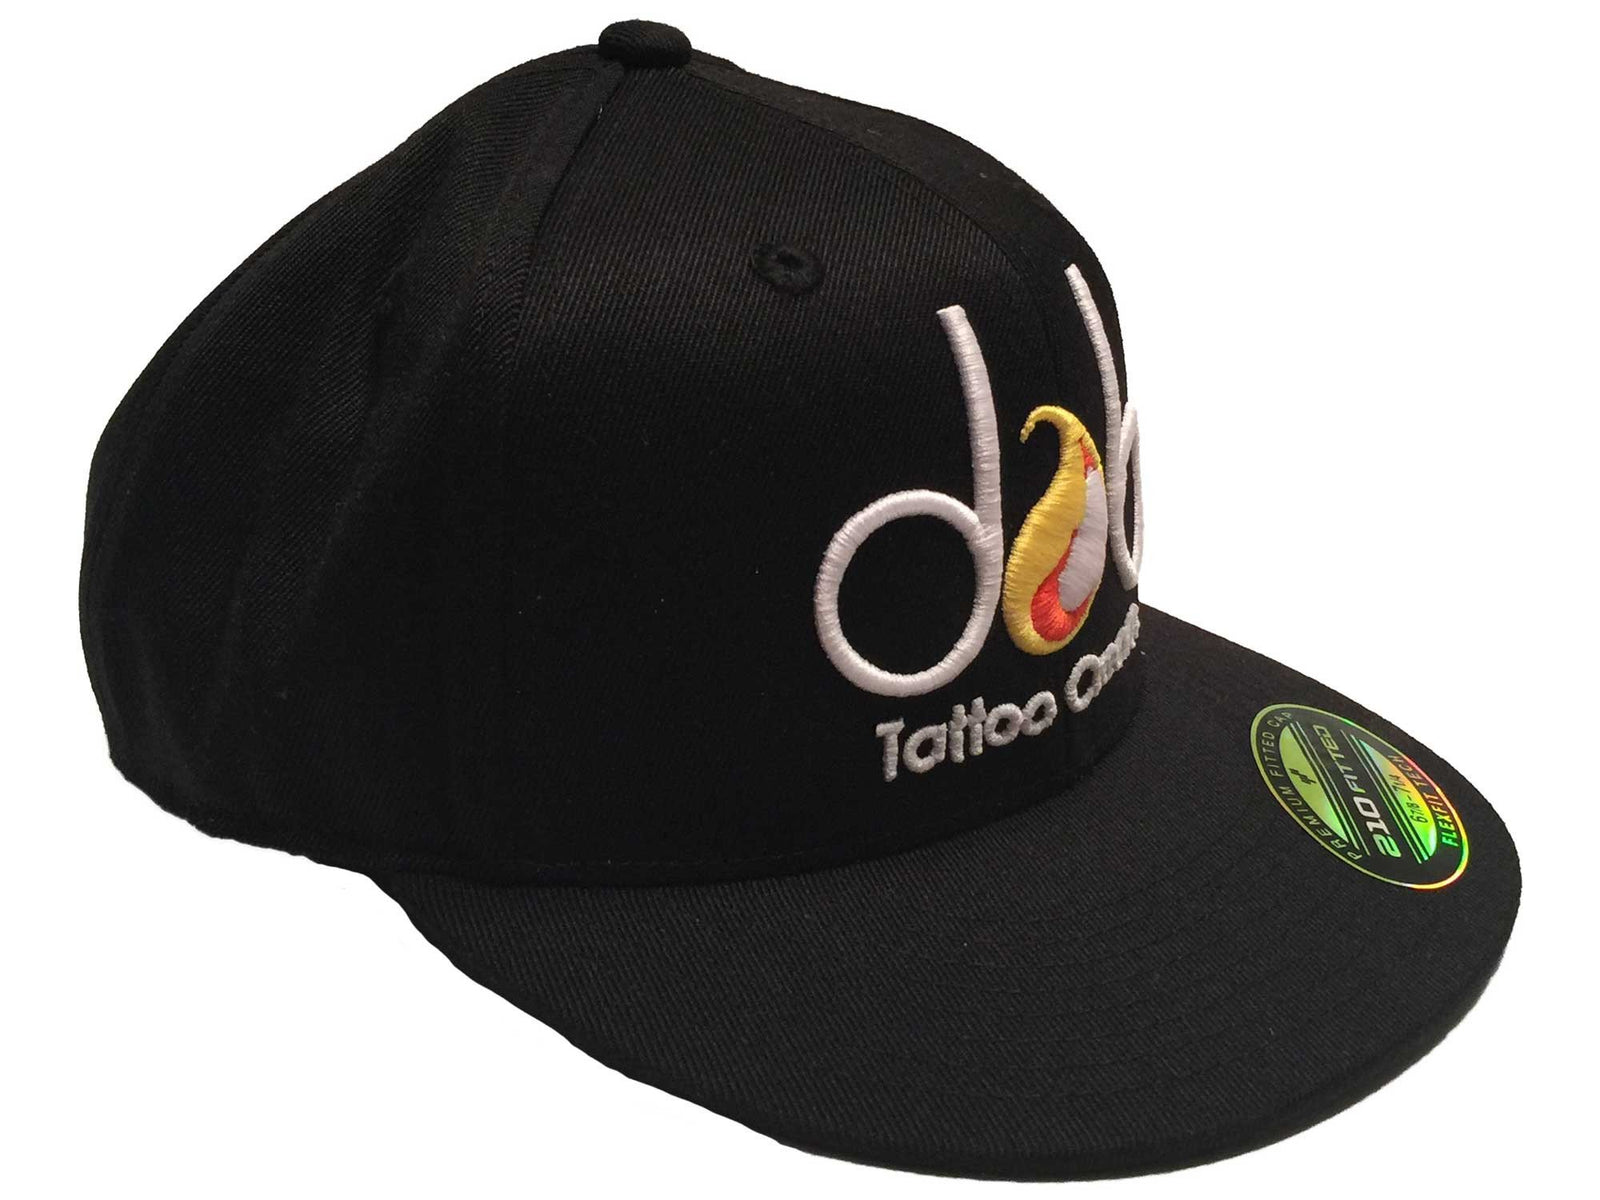 Dab Official 3D Embroidered Flexfit Fitted Hat